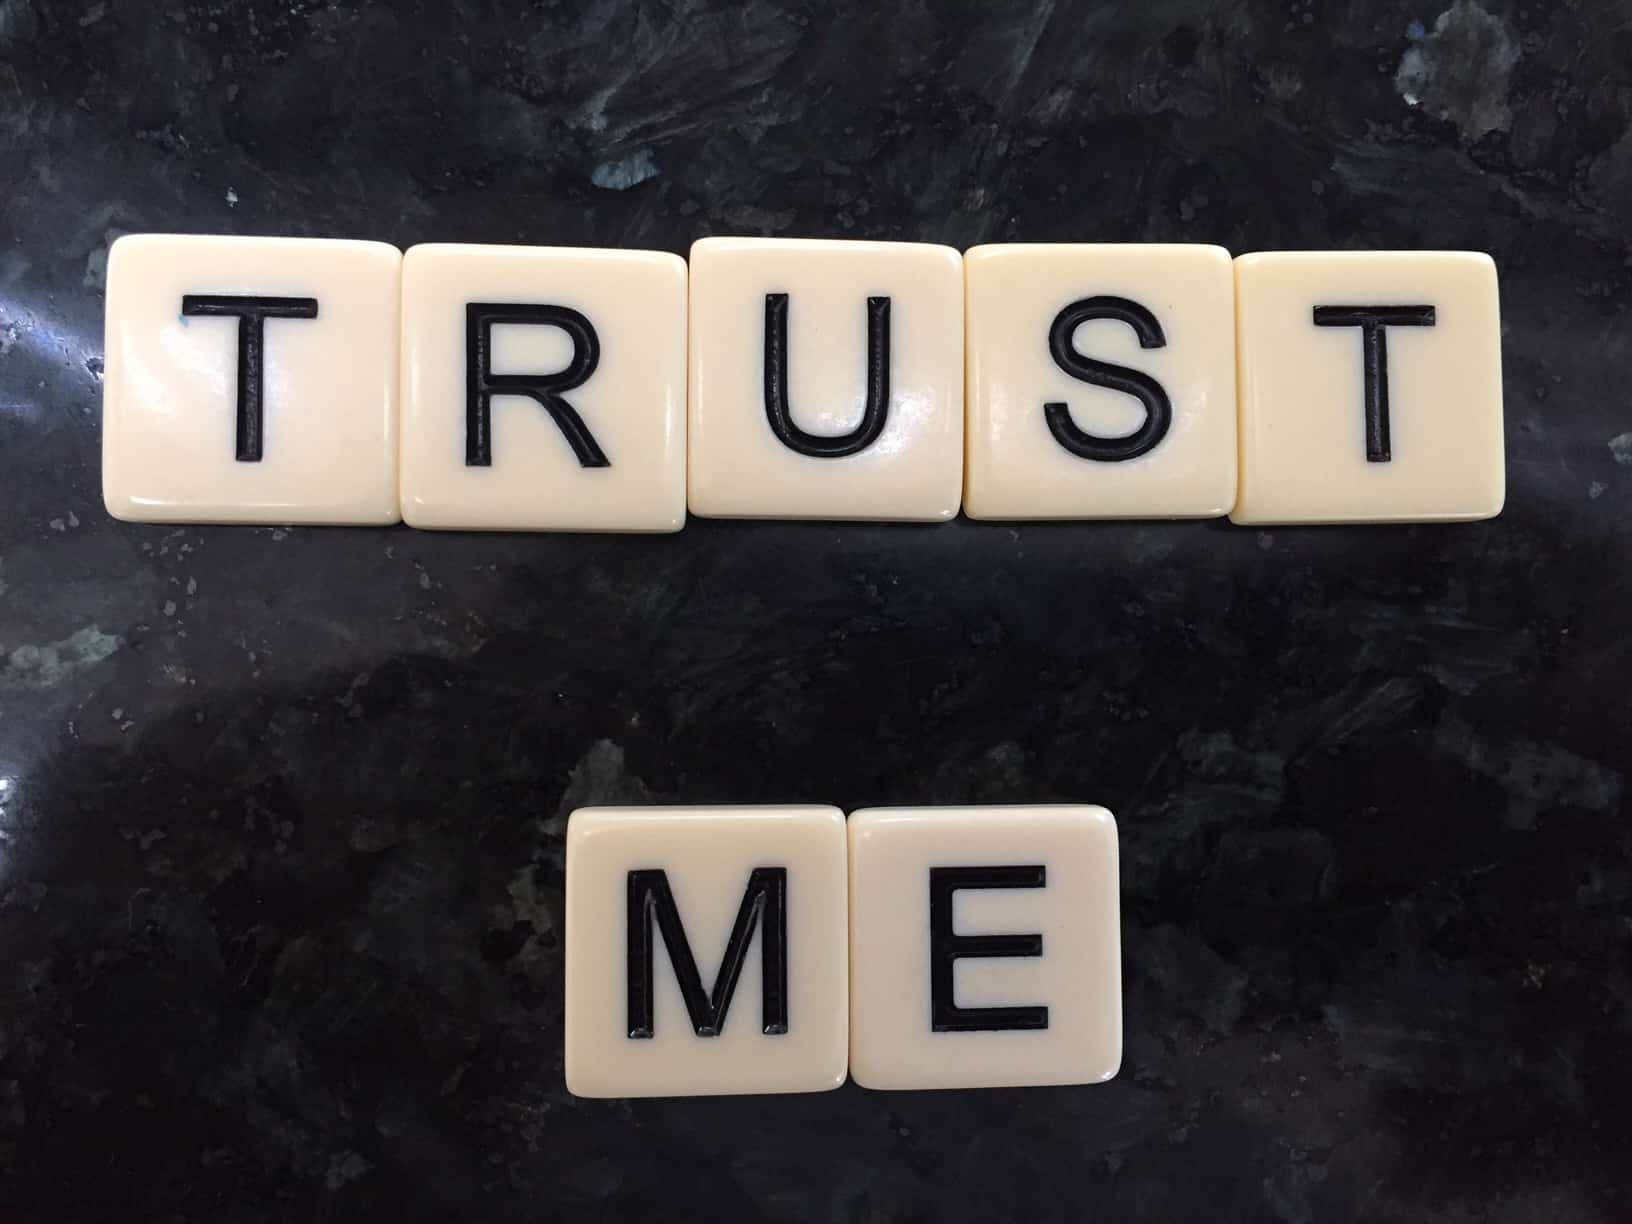 Why do I have to maintain trust?